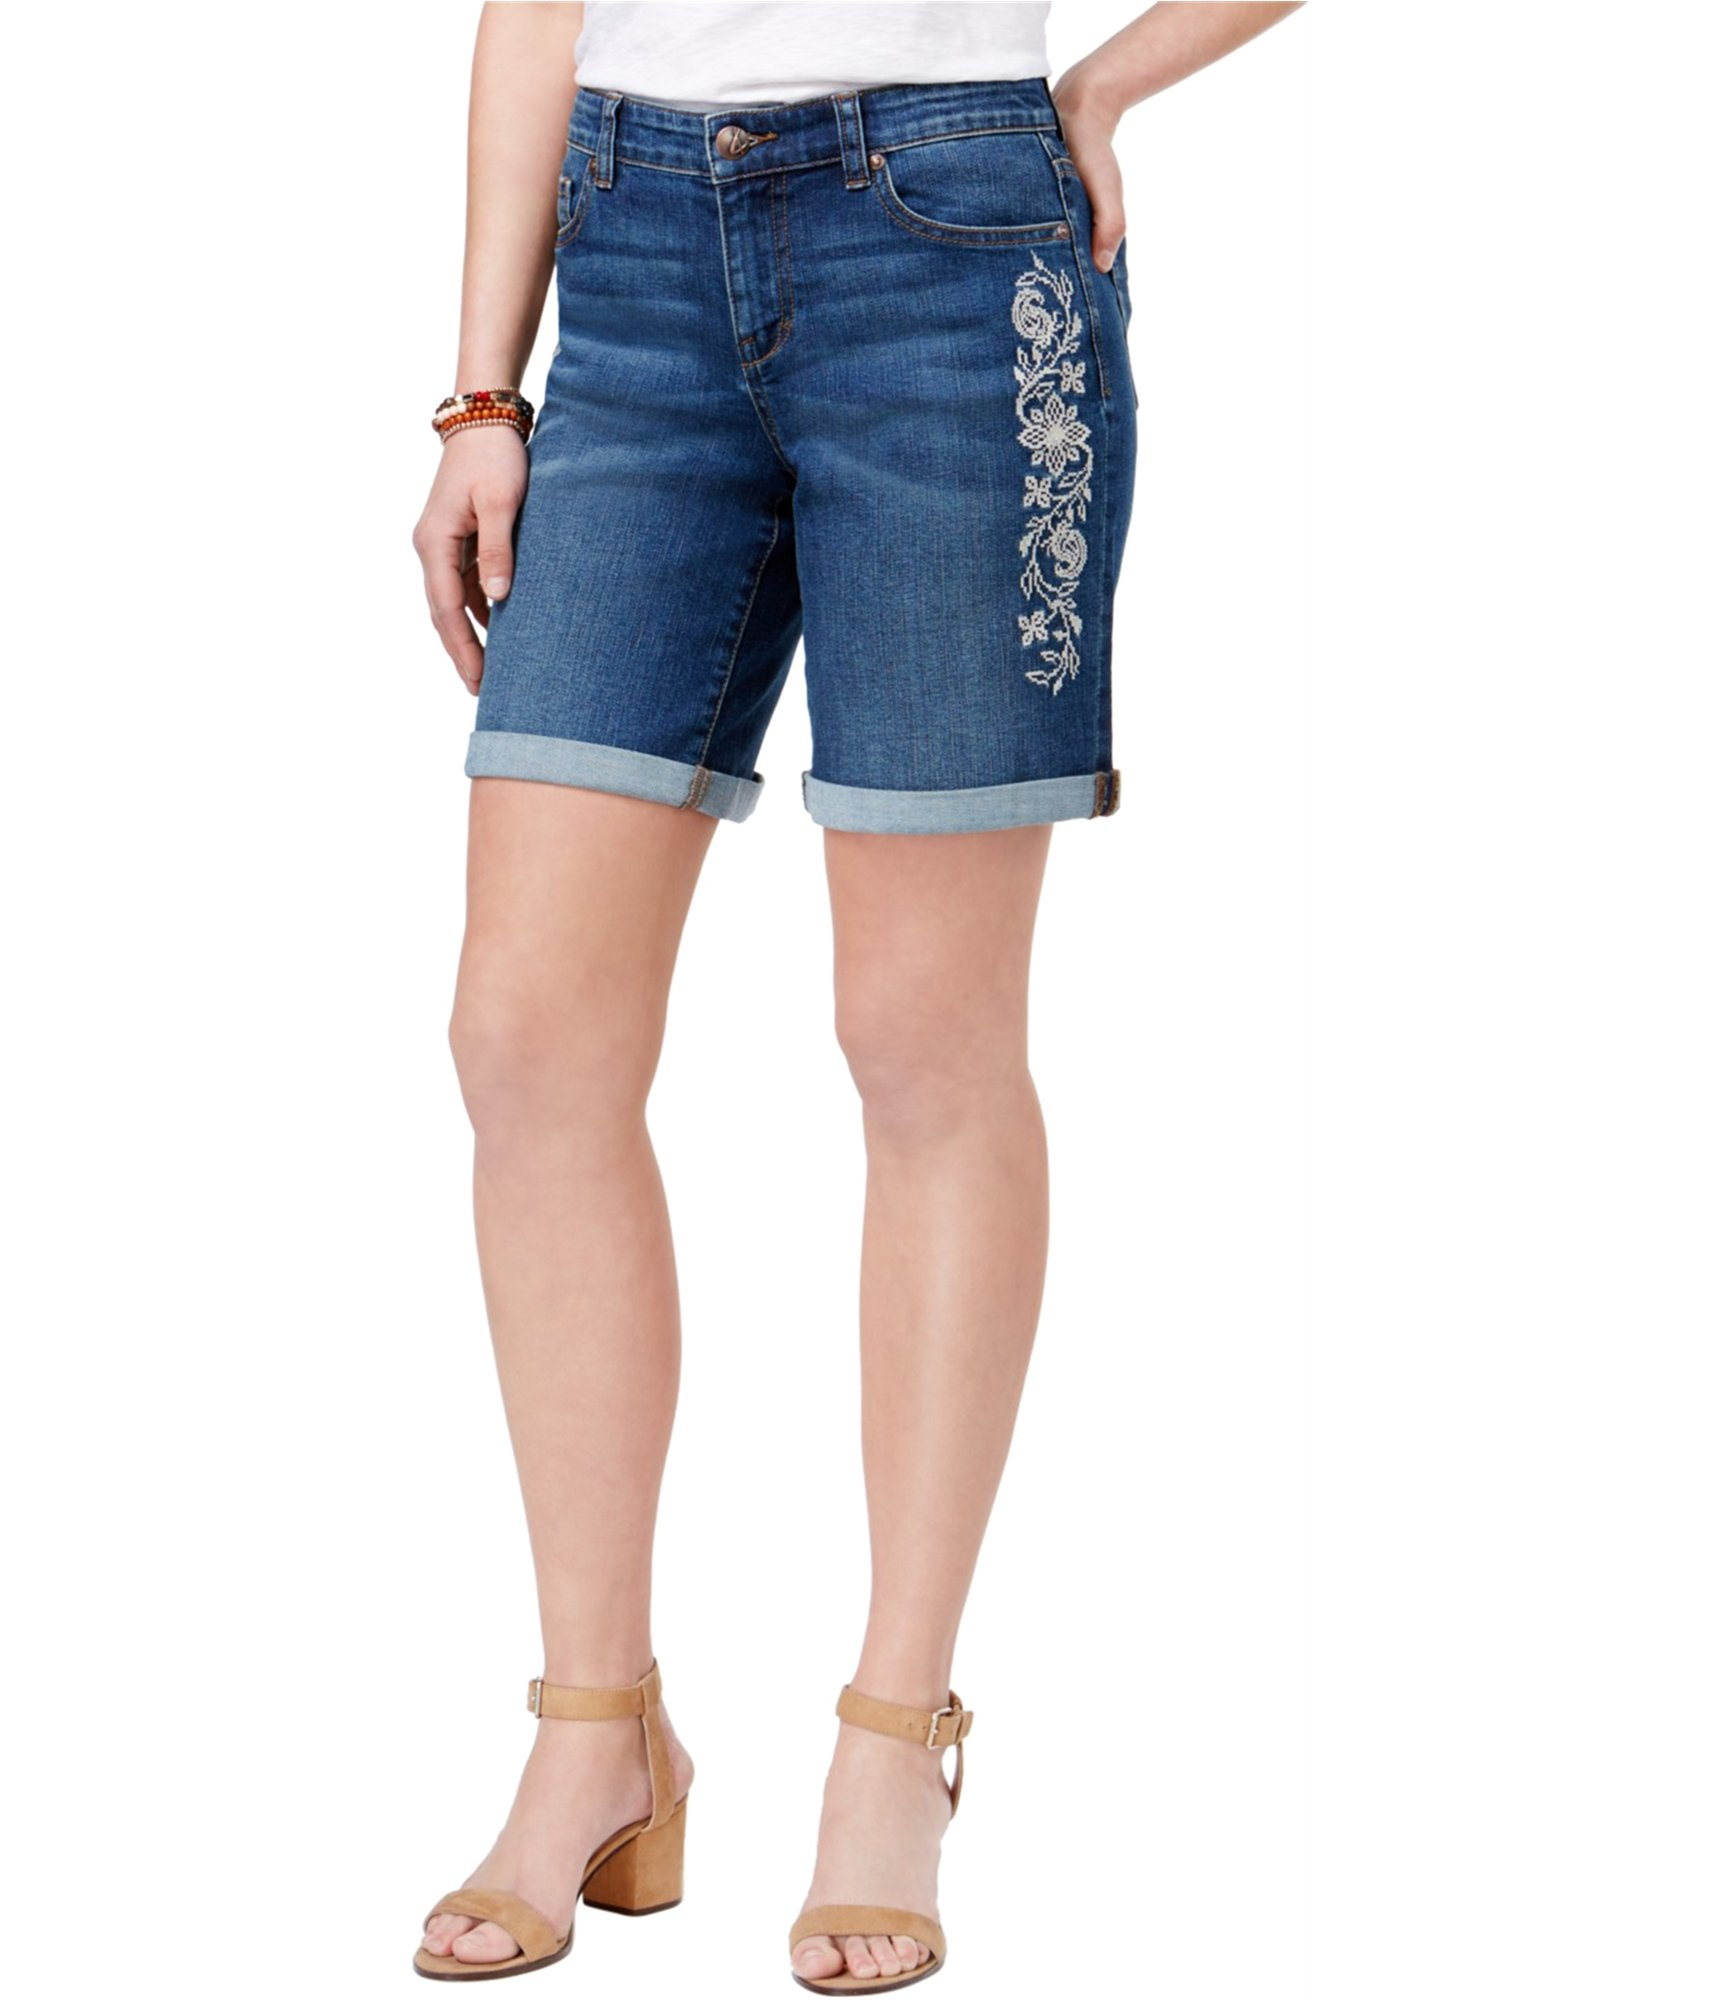 Style & Co. Womens Embroidered Casual Denim Shorts Blue 16